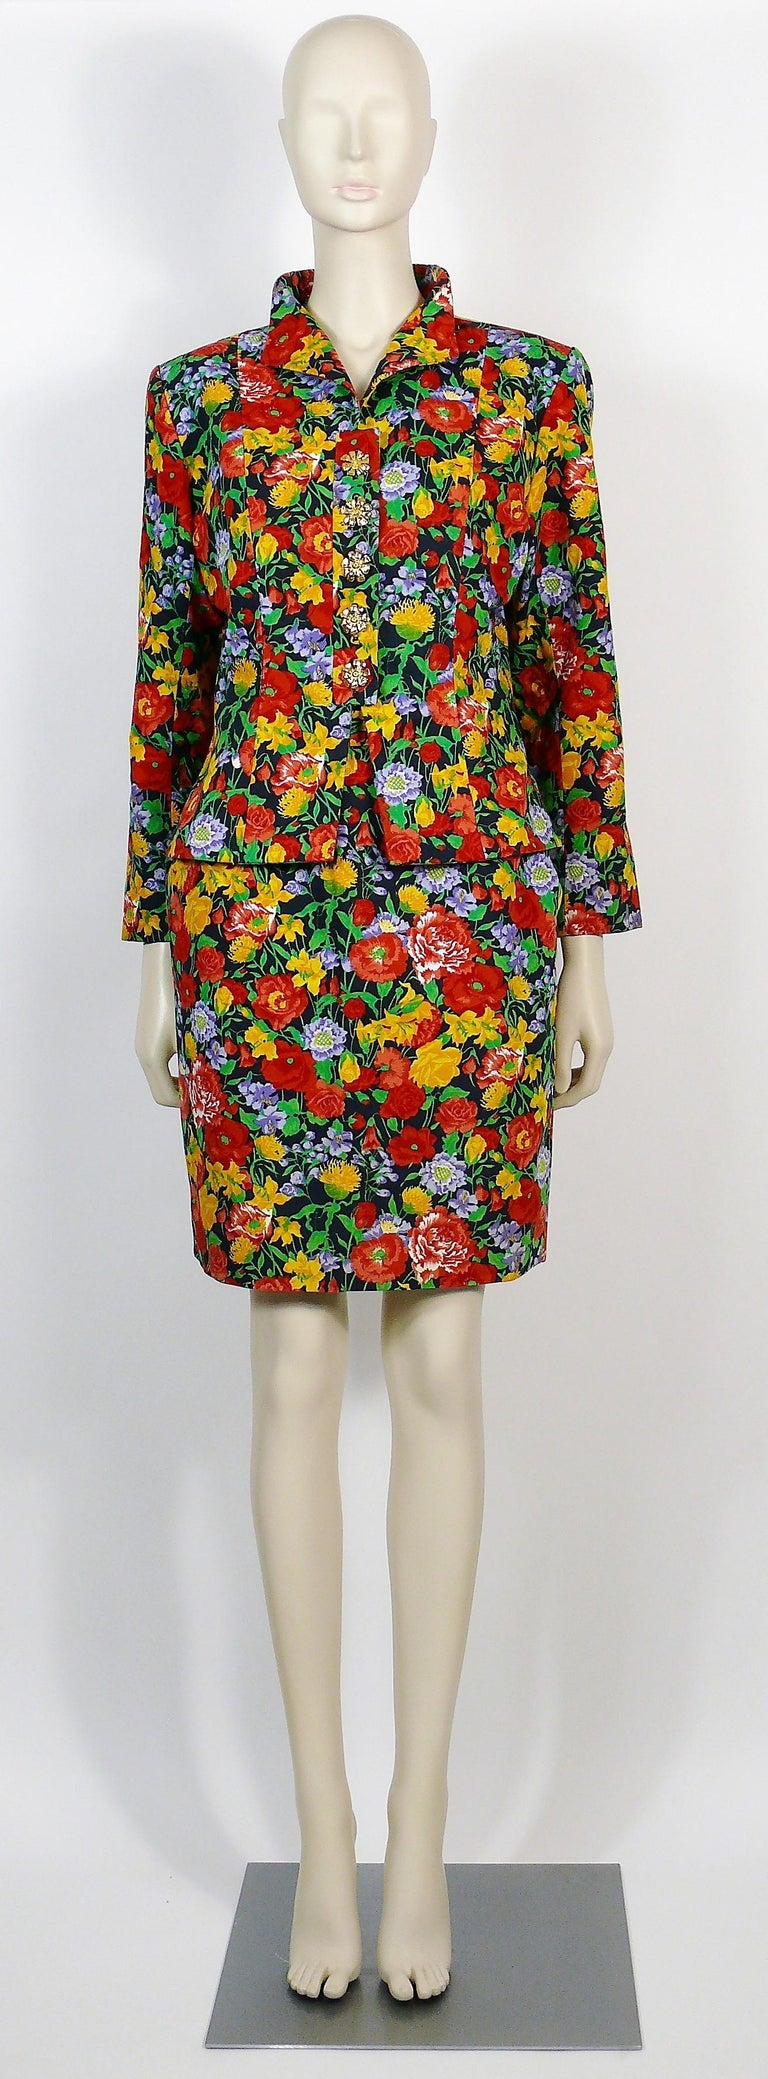 Yves Saint Laurent YSL Vintage Floral Print Skirt Suit Spring/Summer 1992 In Excellent Condition For Sale In Nice, FR